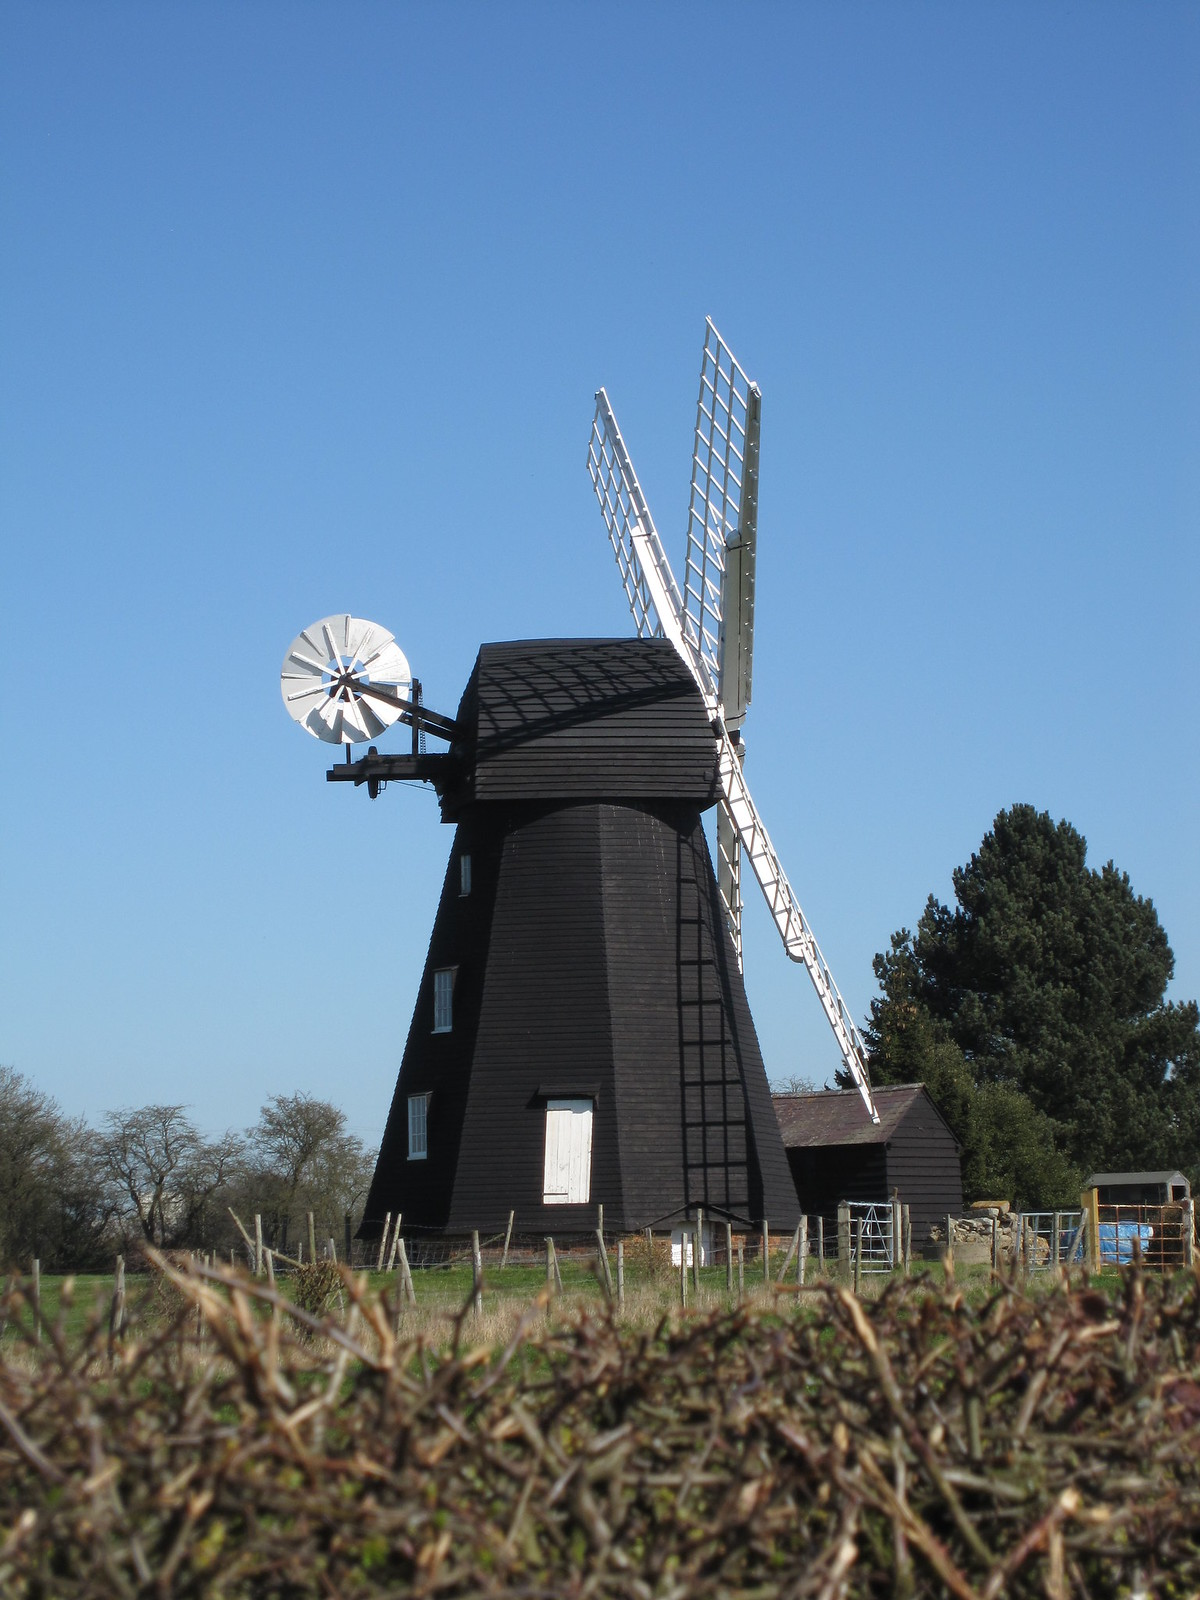 """Lacey Green windmill www.laceygreenwindmill.org.uk/"""" rel=""""nofollow www.laceygreenwindmill.org.uk/ Time Out Country Walks Book 1, Walk 45. Princes Risborough to Great Missenden."""